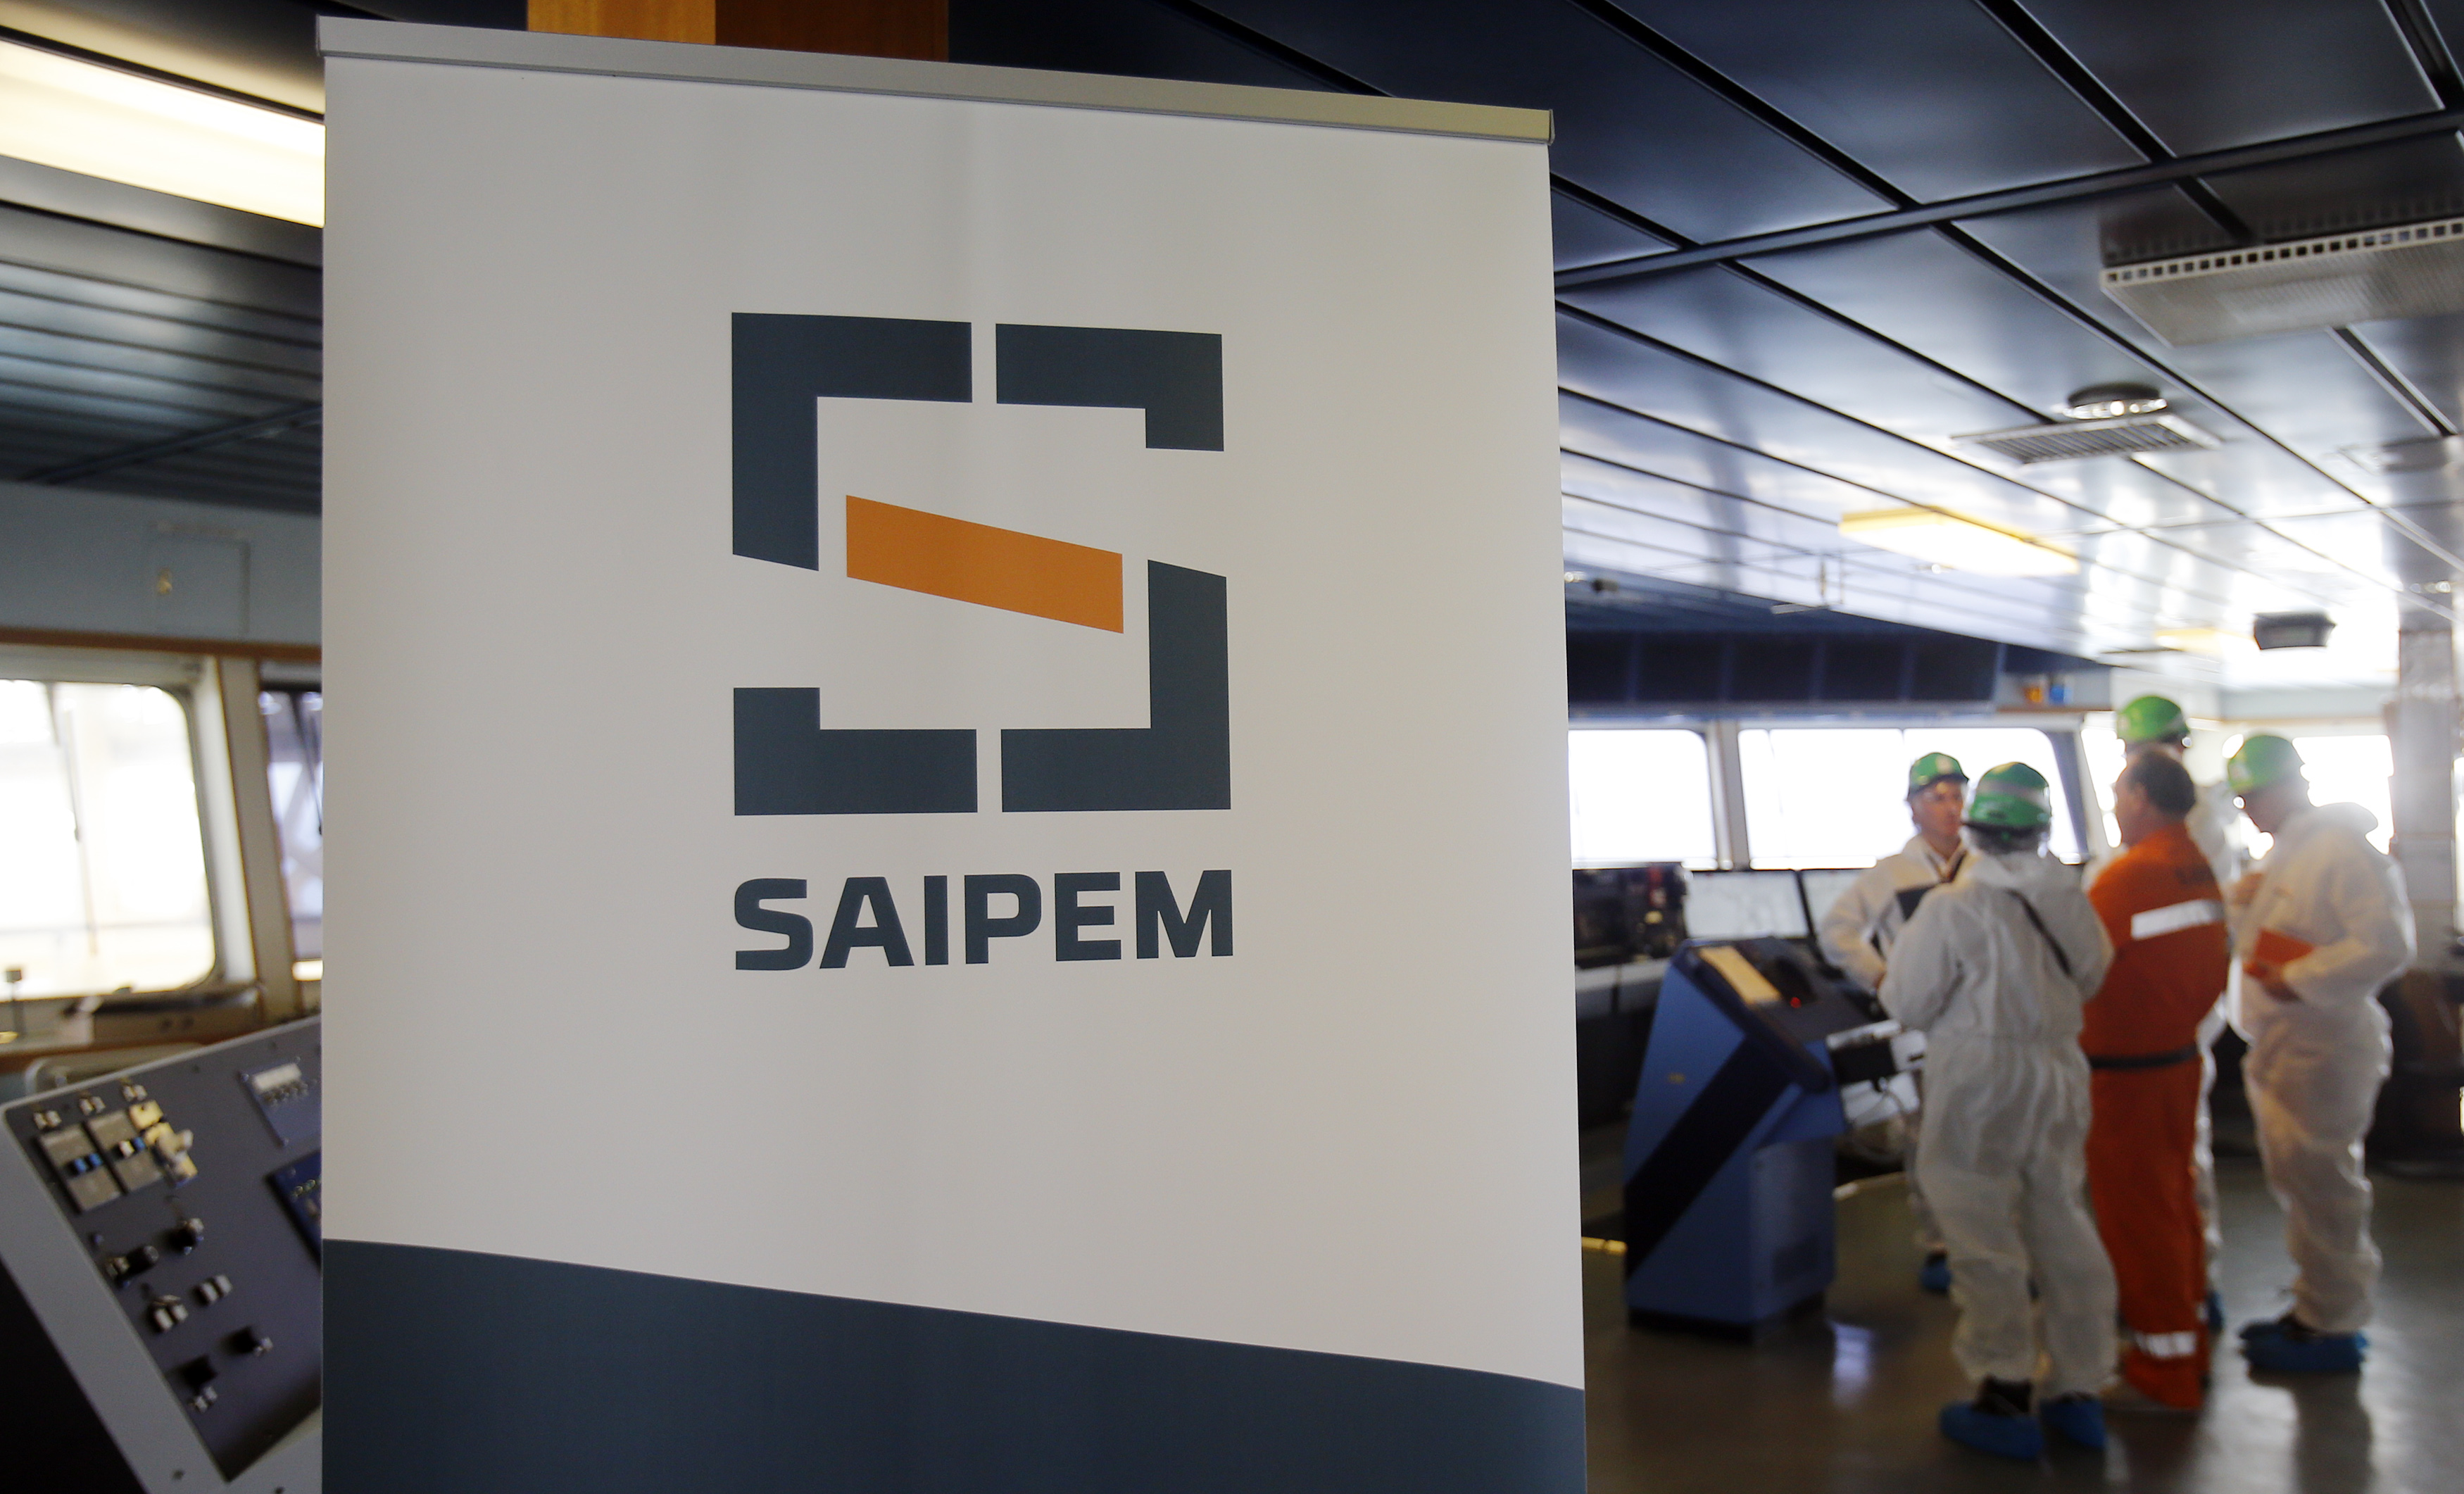 Saipem says Shamoon variant crippled hundreds of computers